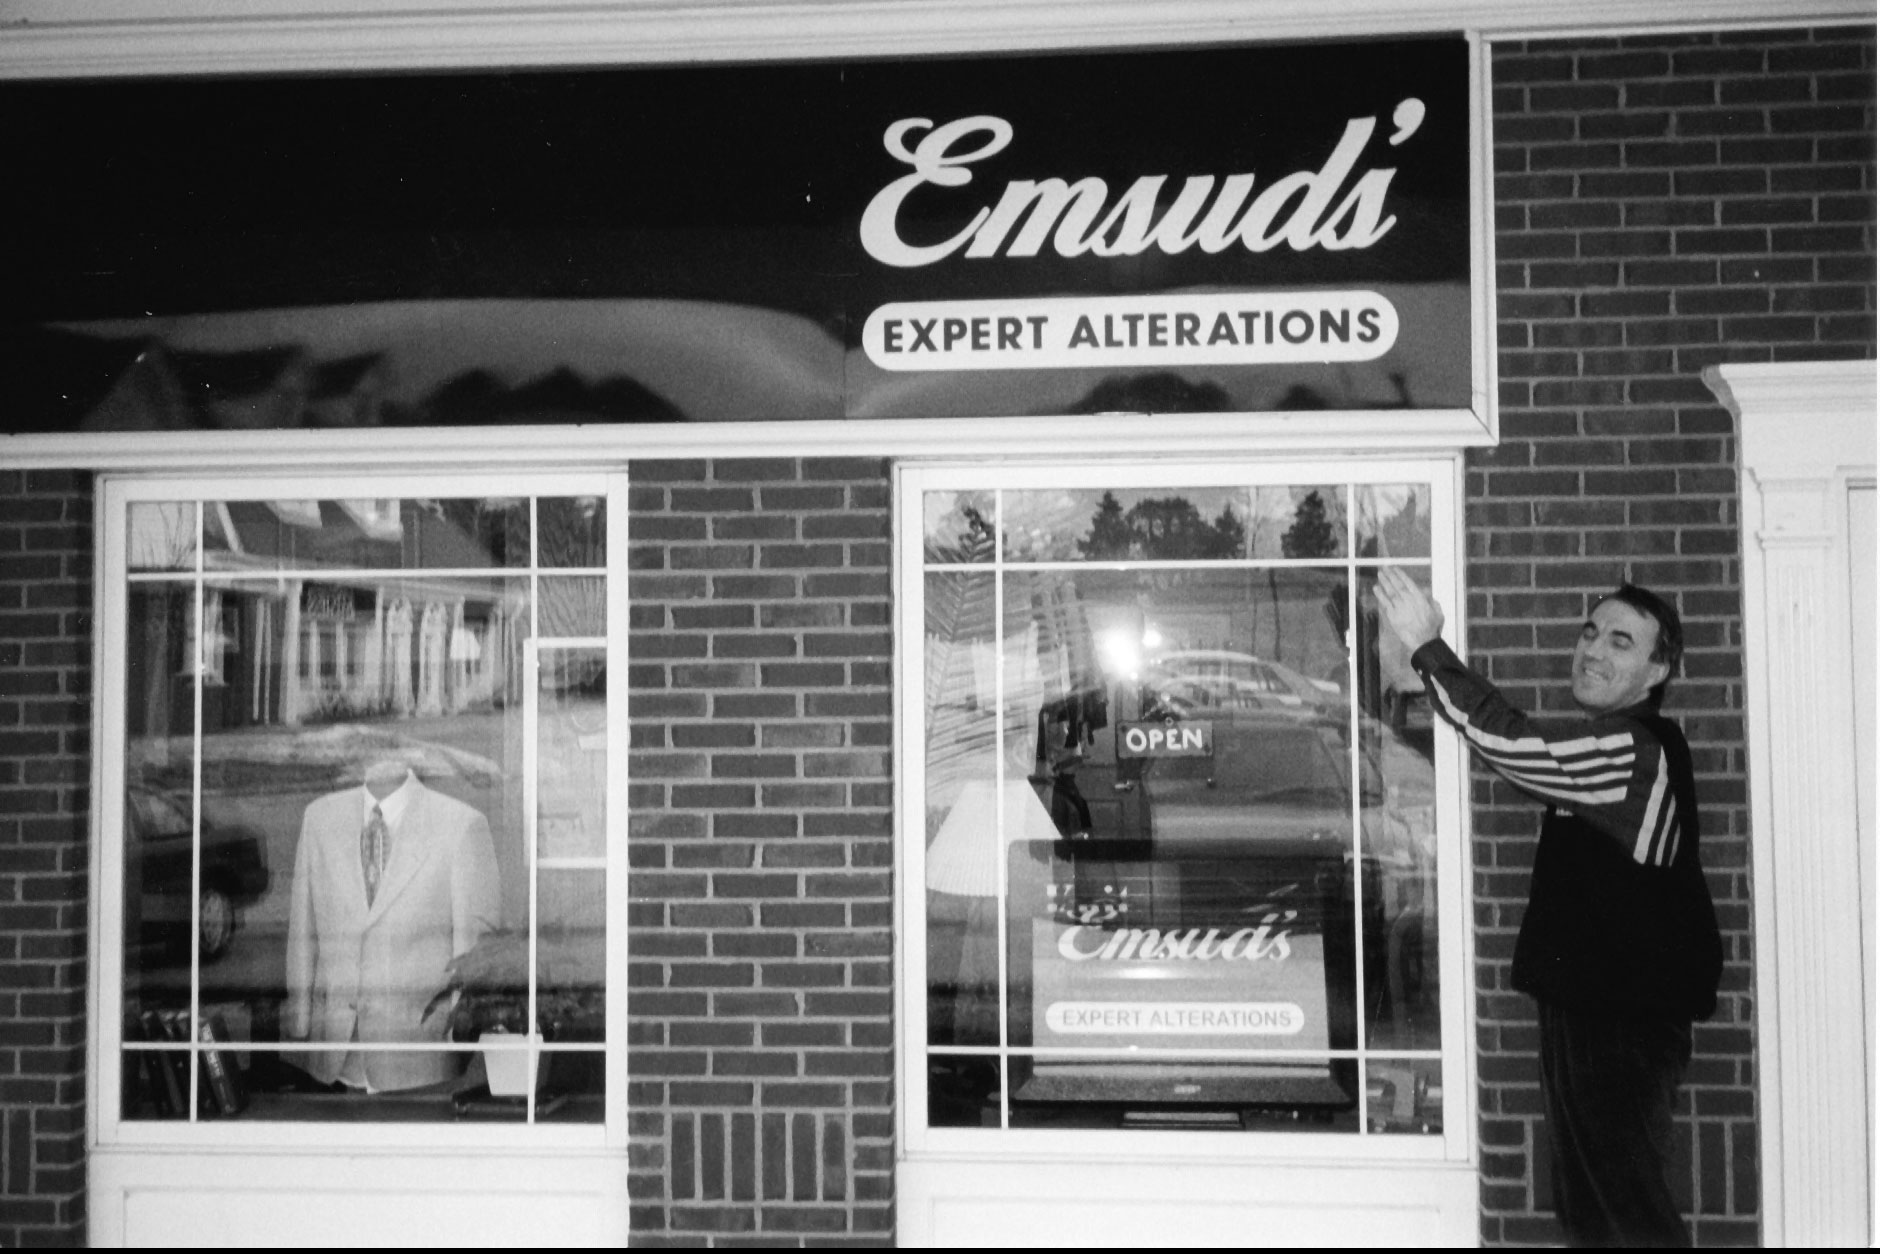 Emsud's Expert Alterations